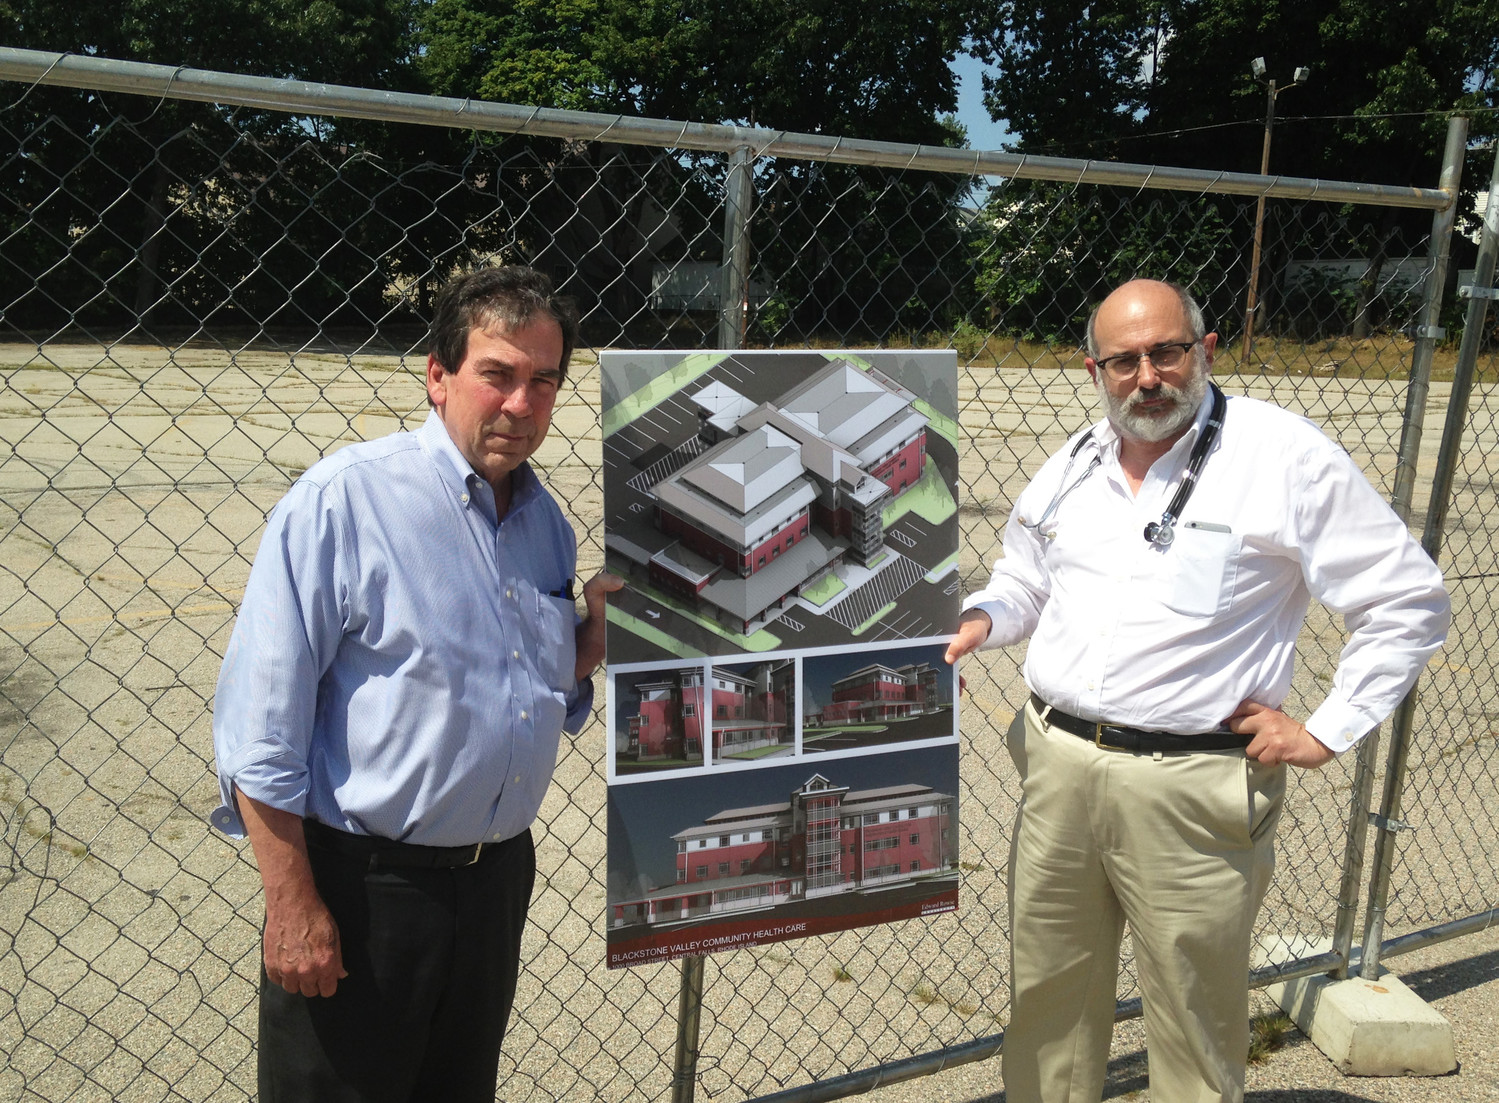 Ray Lavoie, left, and Dr. Michael Fine, at the site of the new Neighborhood Health Station in Central Falls, in August of 2017, holding architectural renderings of the new facility.